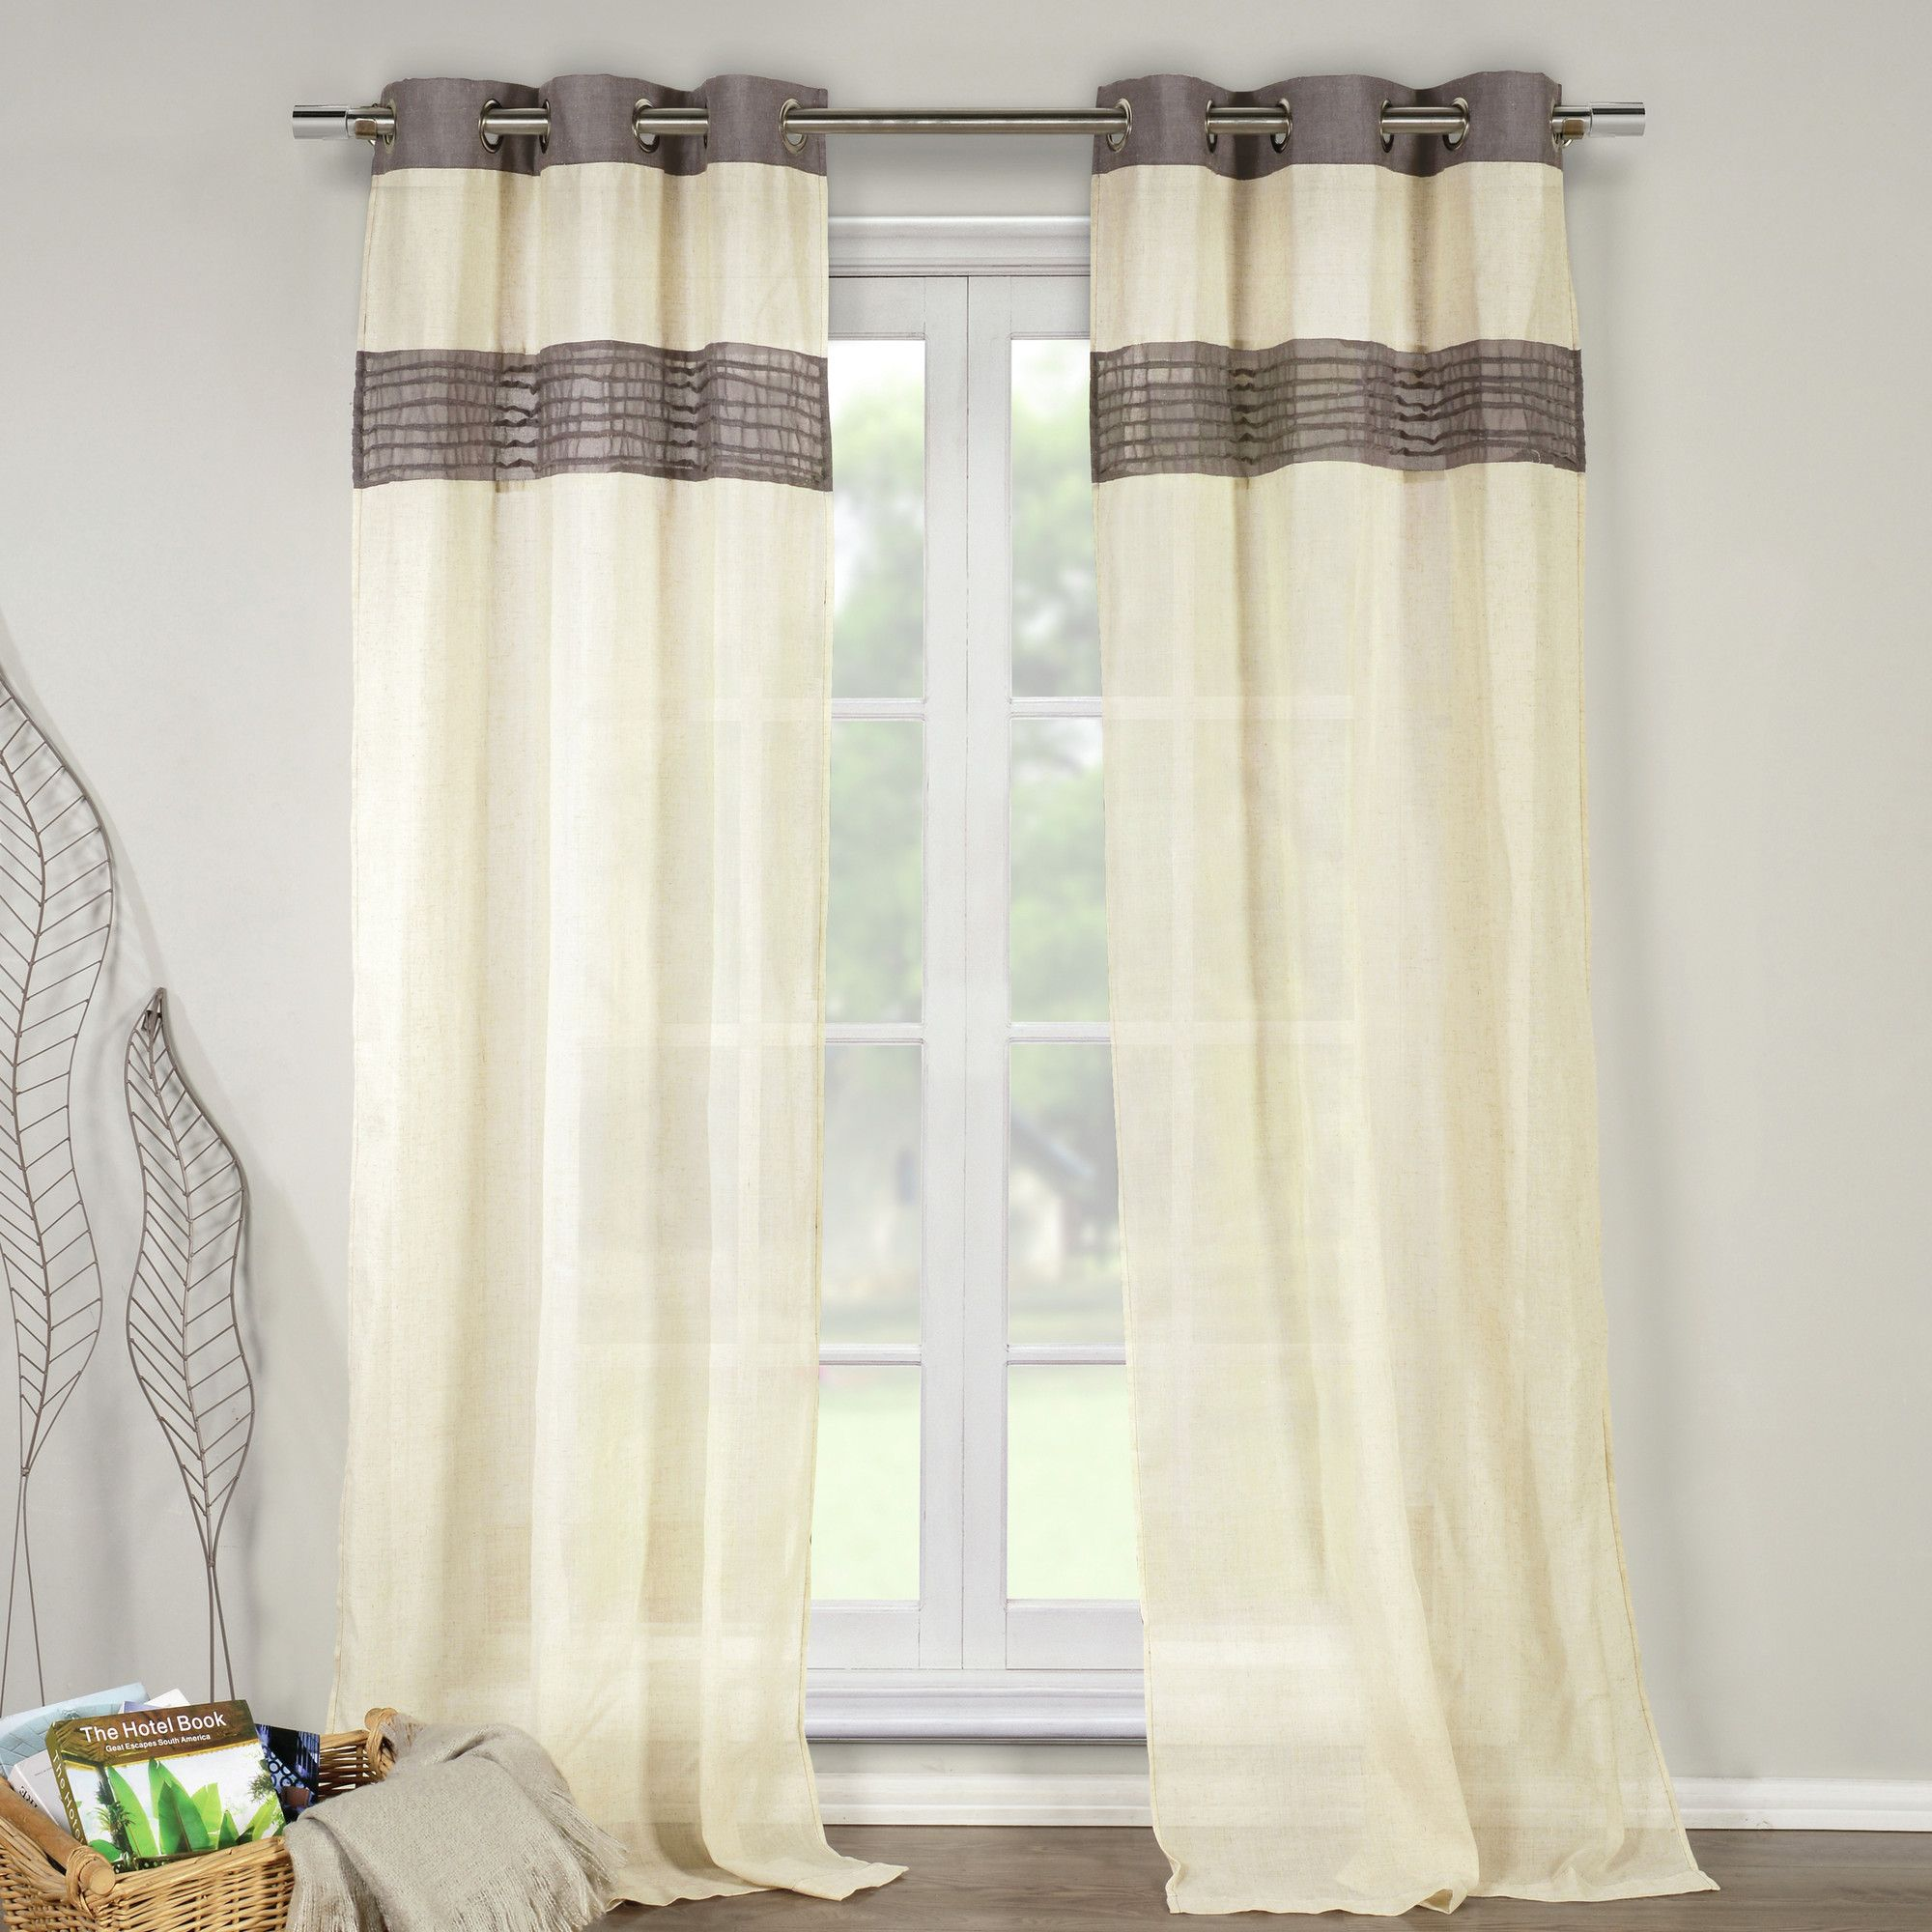 Dining room window coverings  dr international rhett curtain panel u reviews  wayfair  home